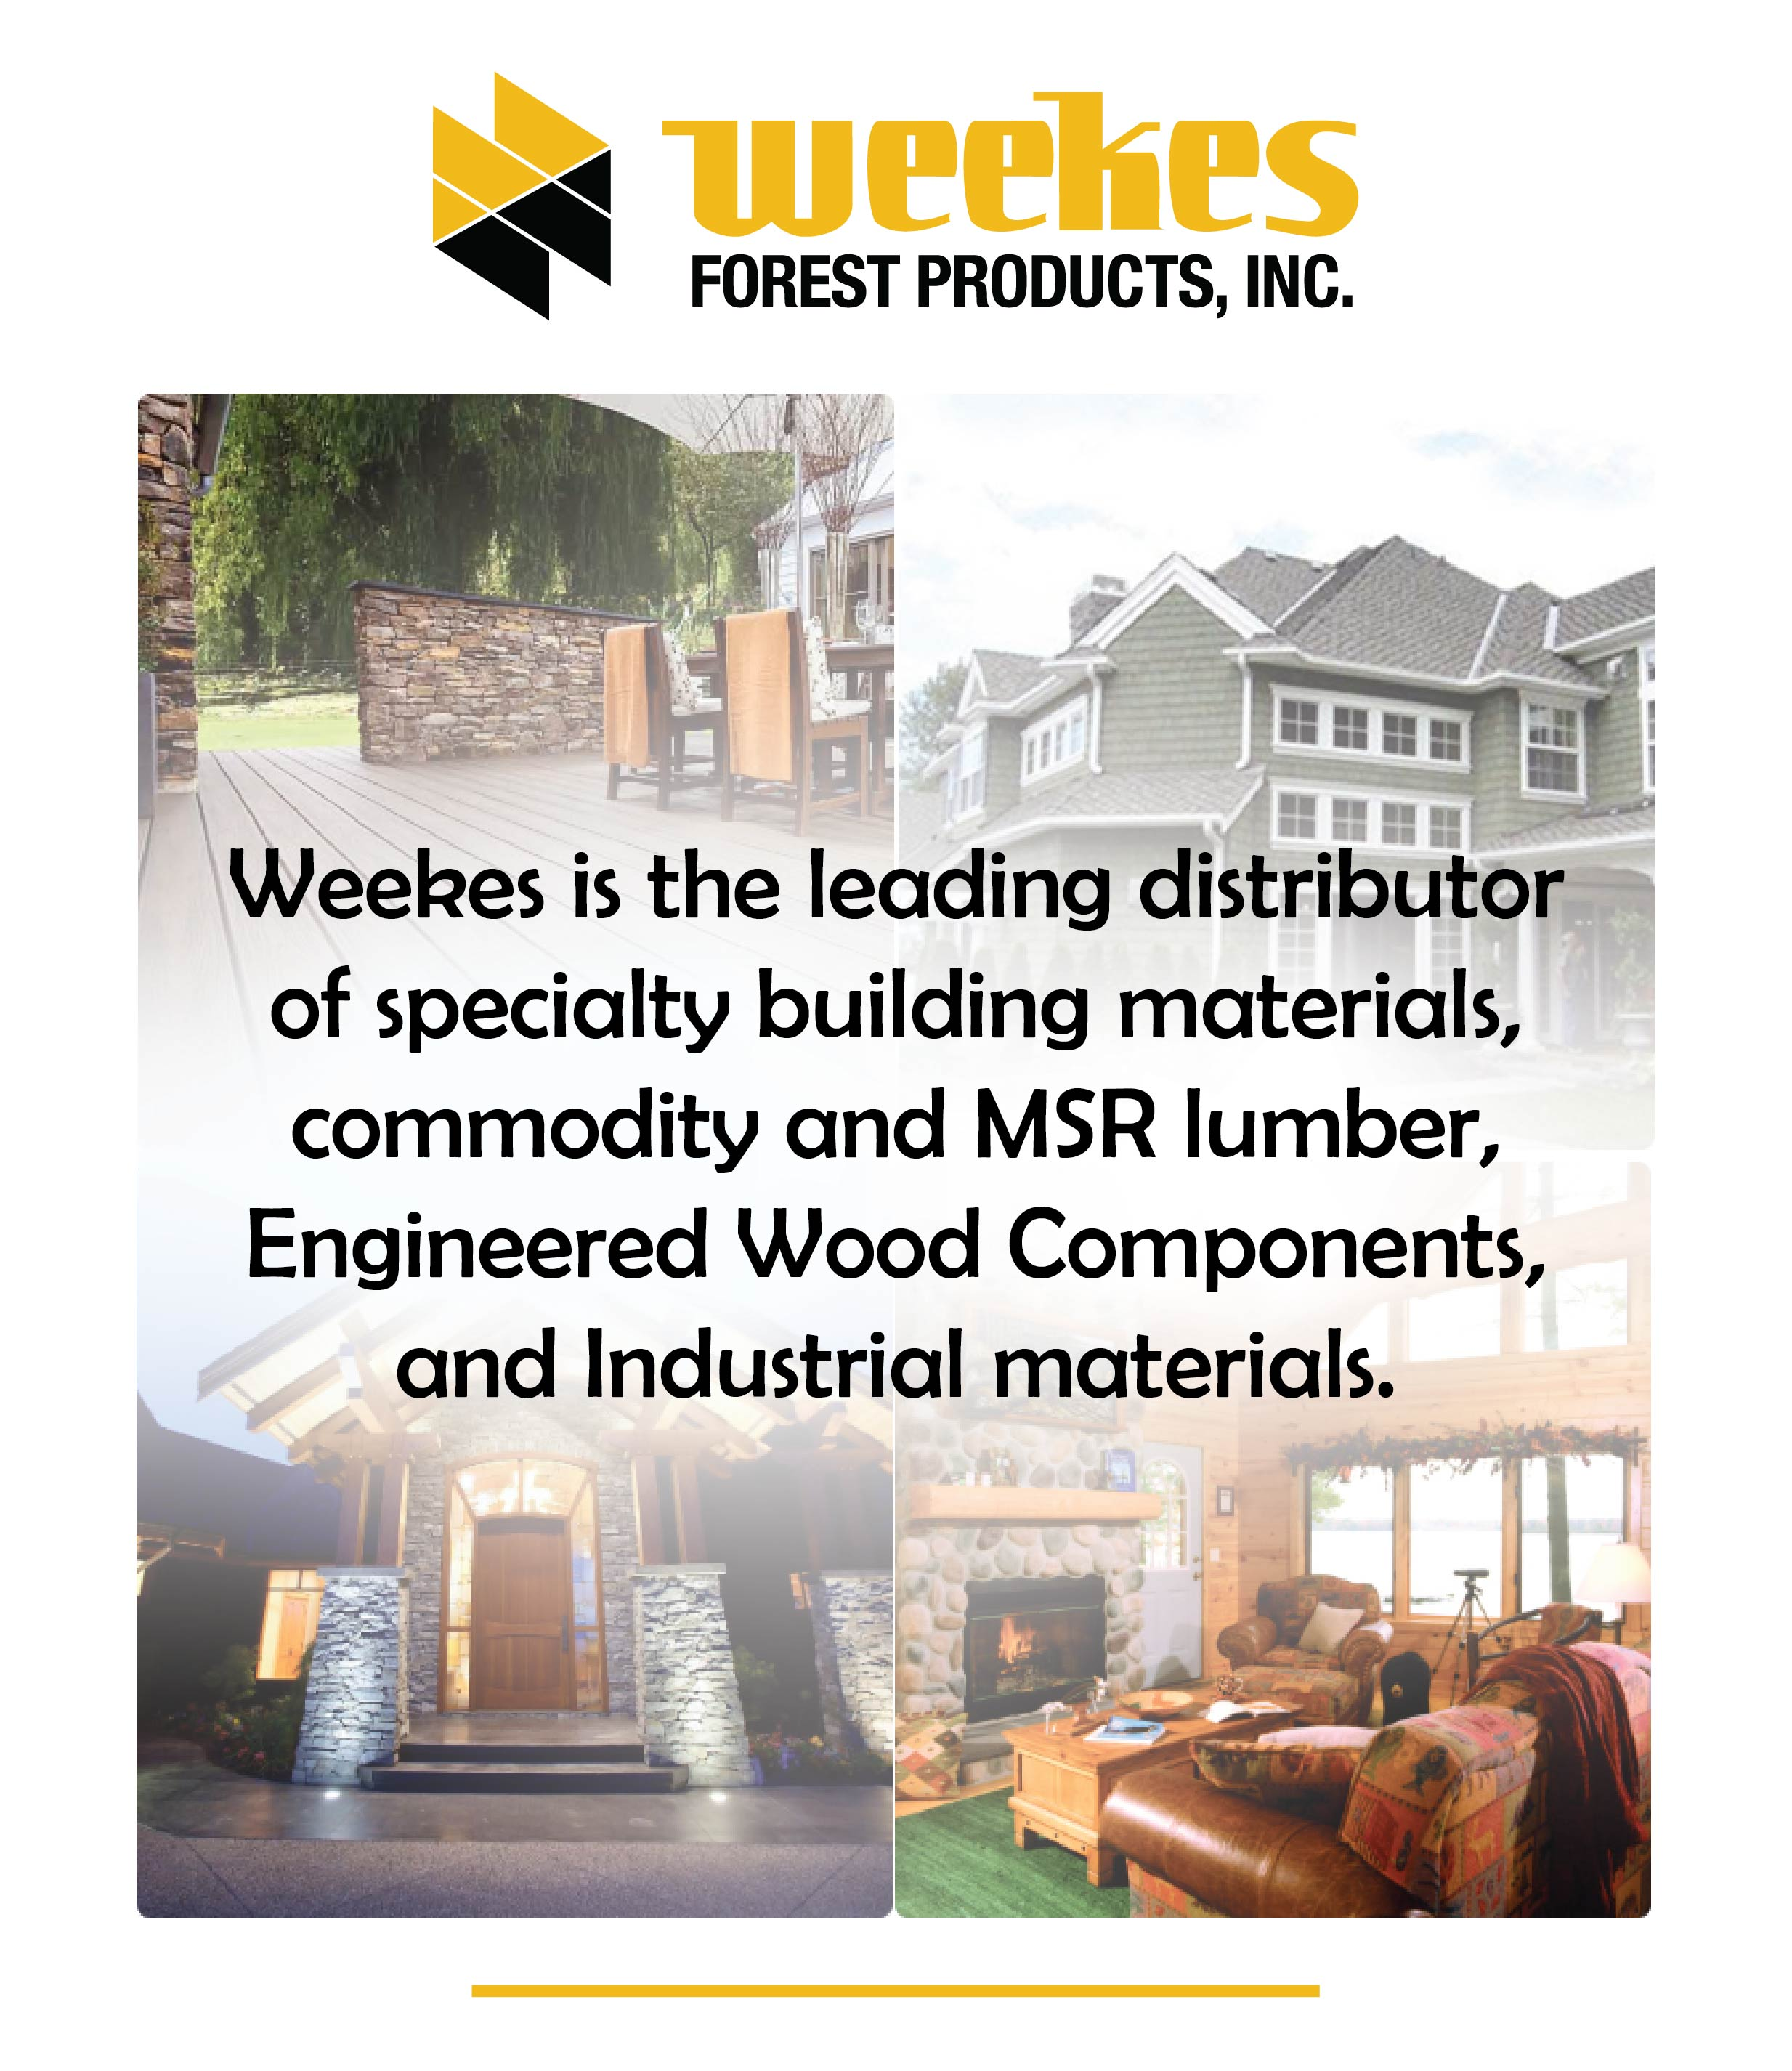 Weekes Forest Products